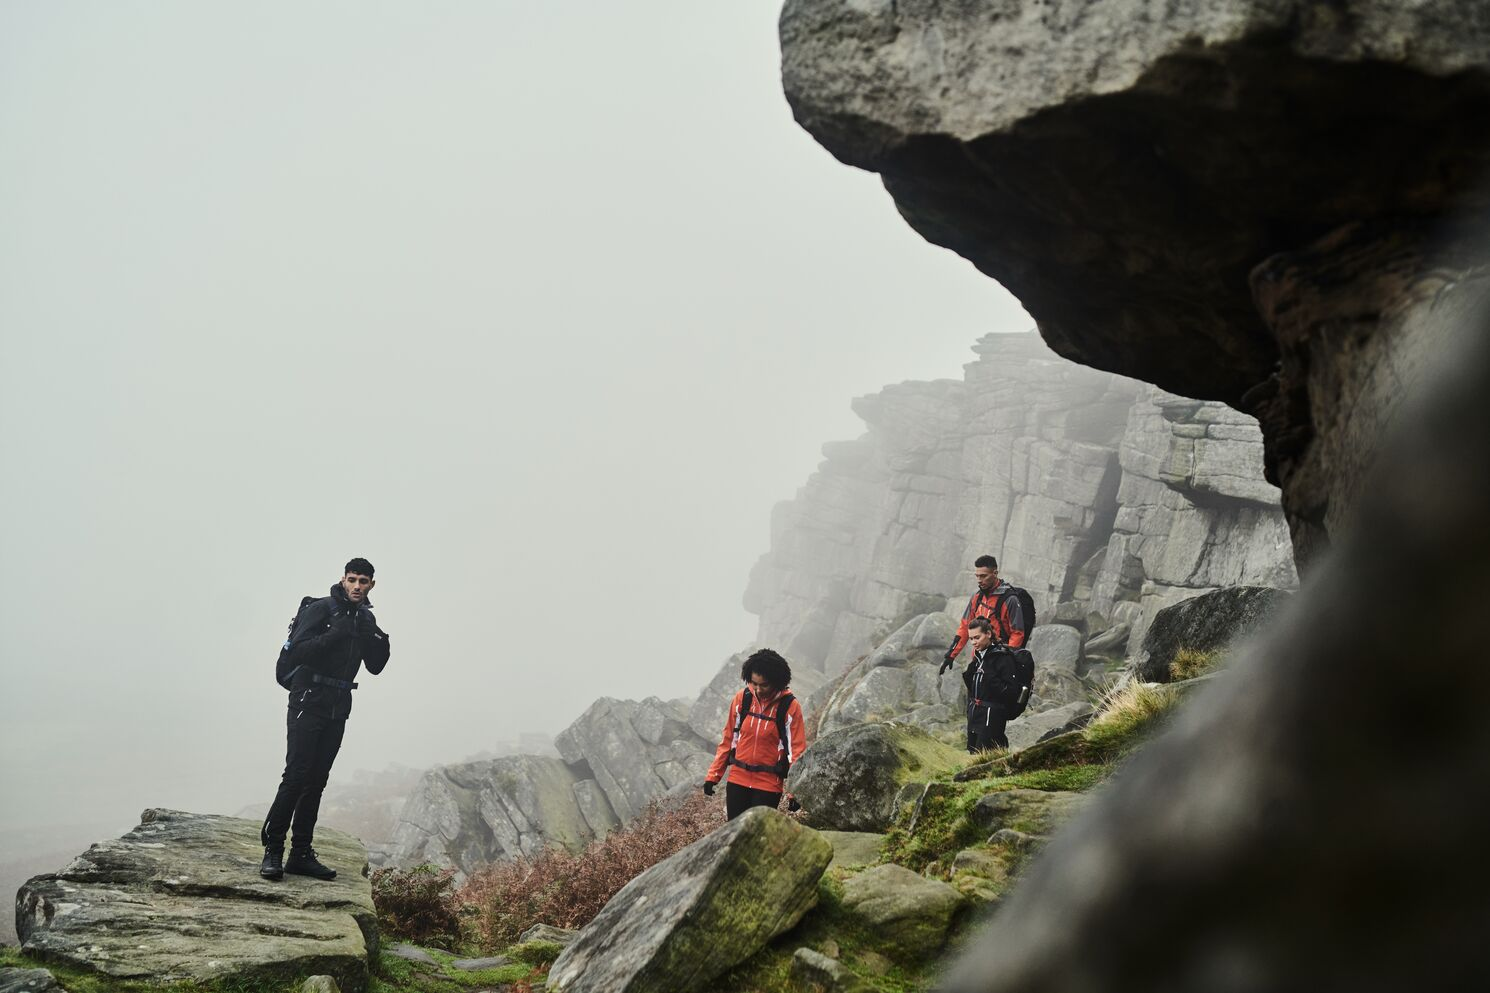 Hikers walking in the foggy mountains